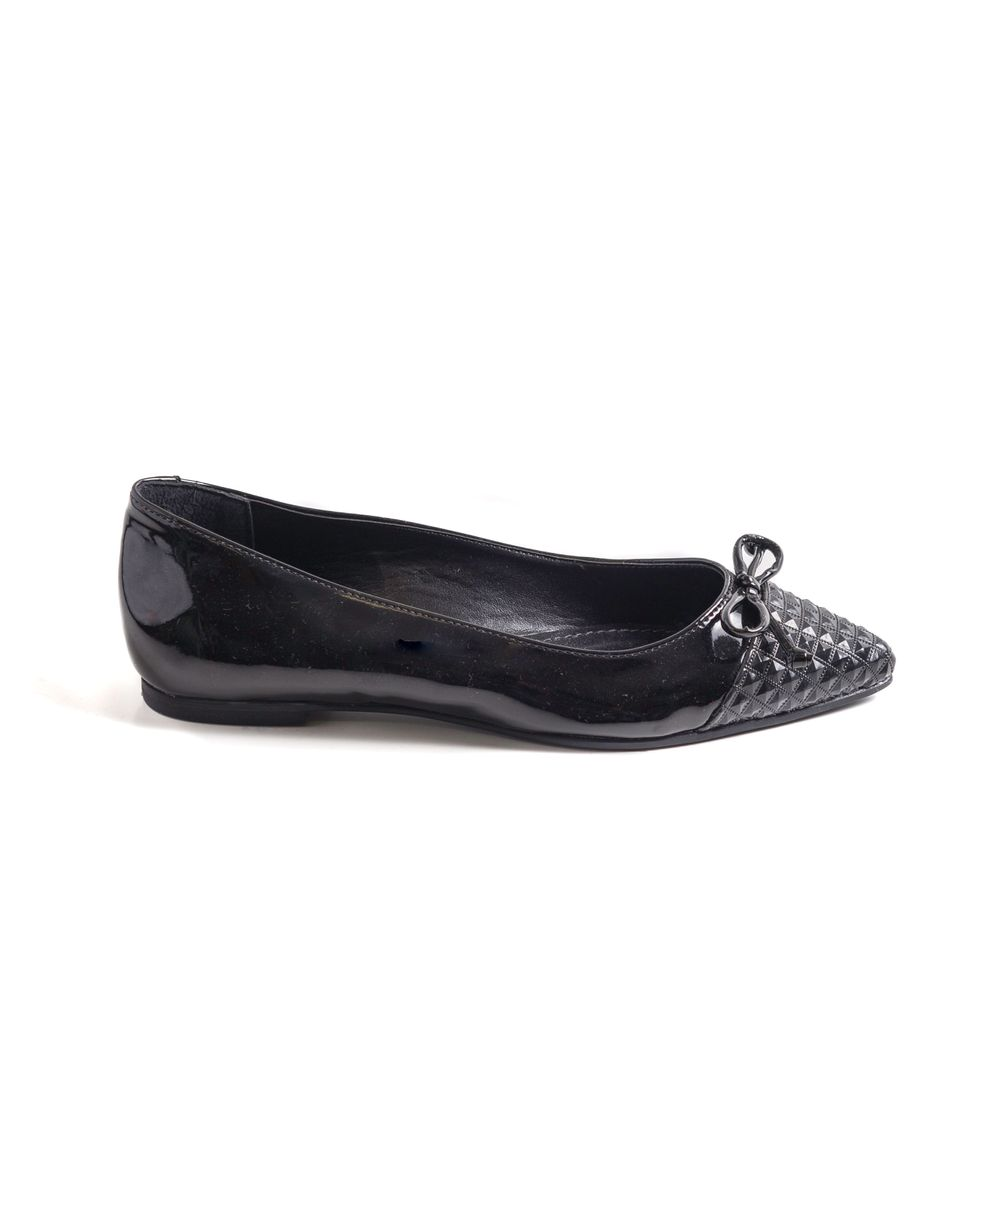 MY-SHOES-SAPATILHA-BIQUE-PRETO-70430012